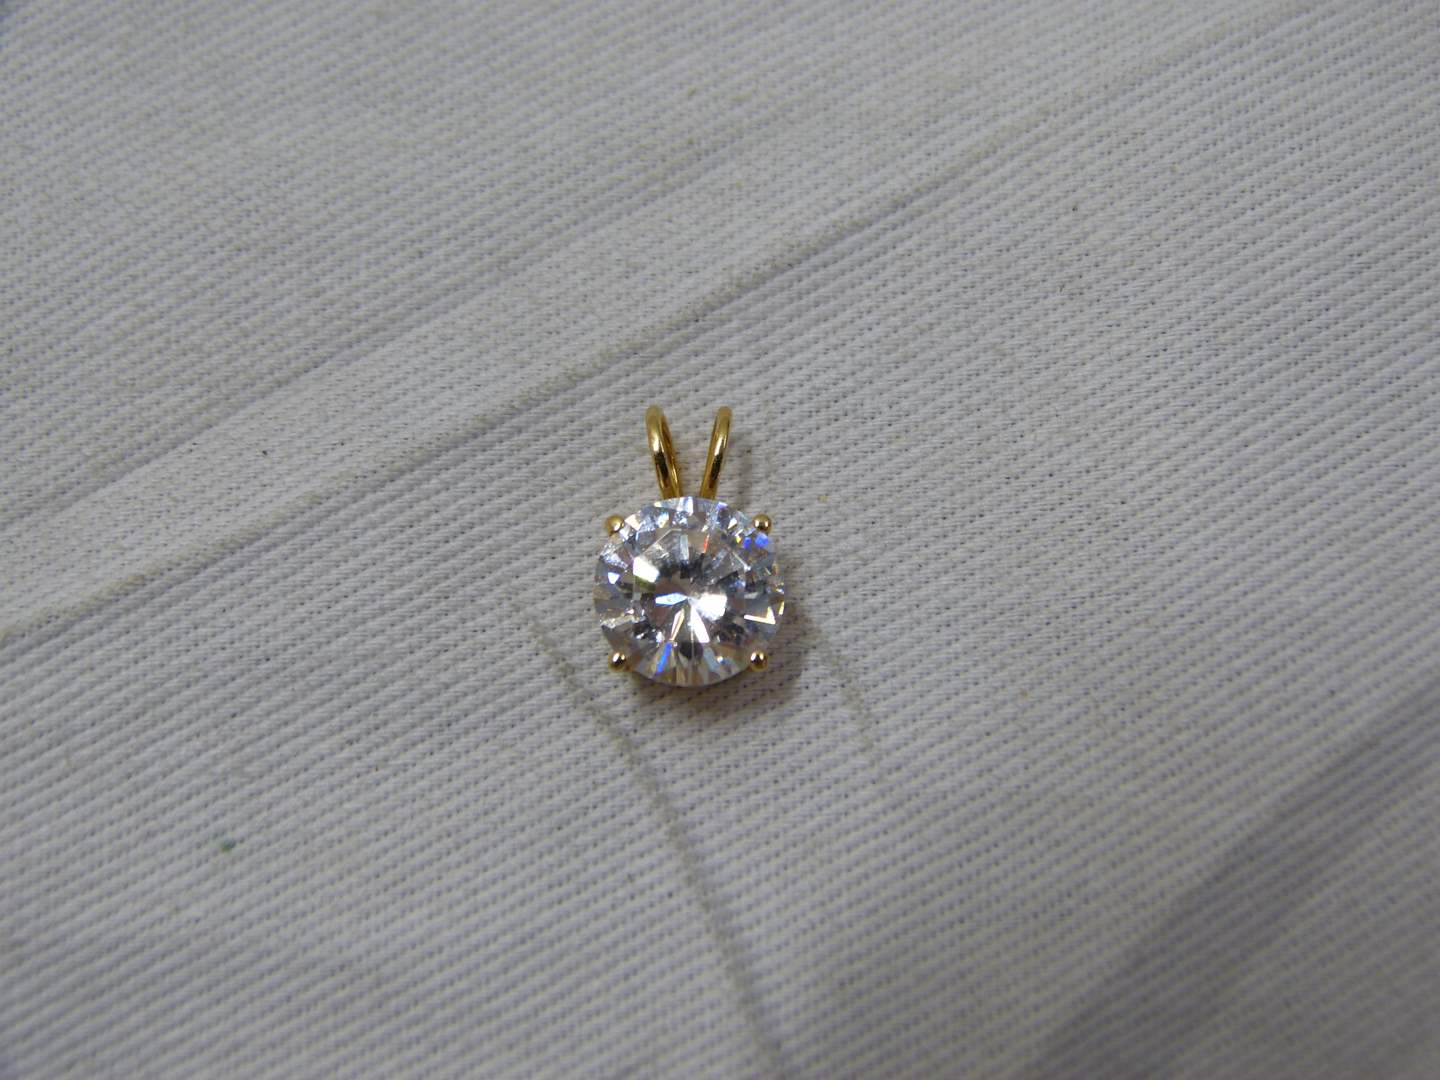 Lot # 230  Guaranteed 14K gold pendant with large CZ